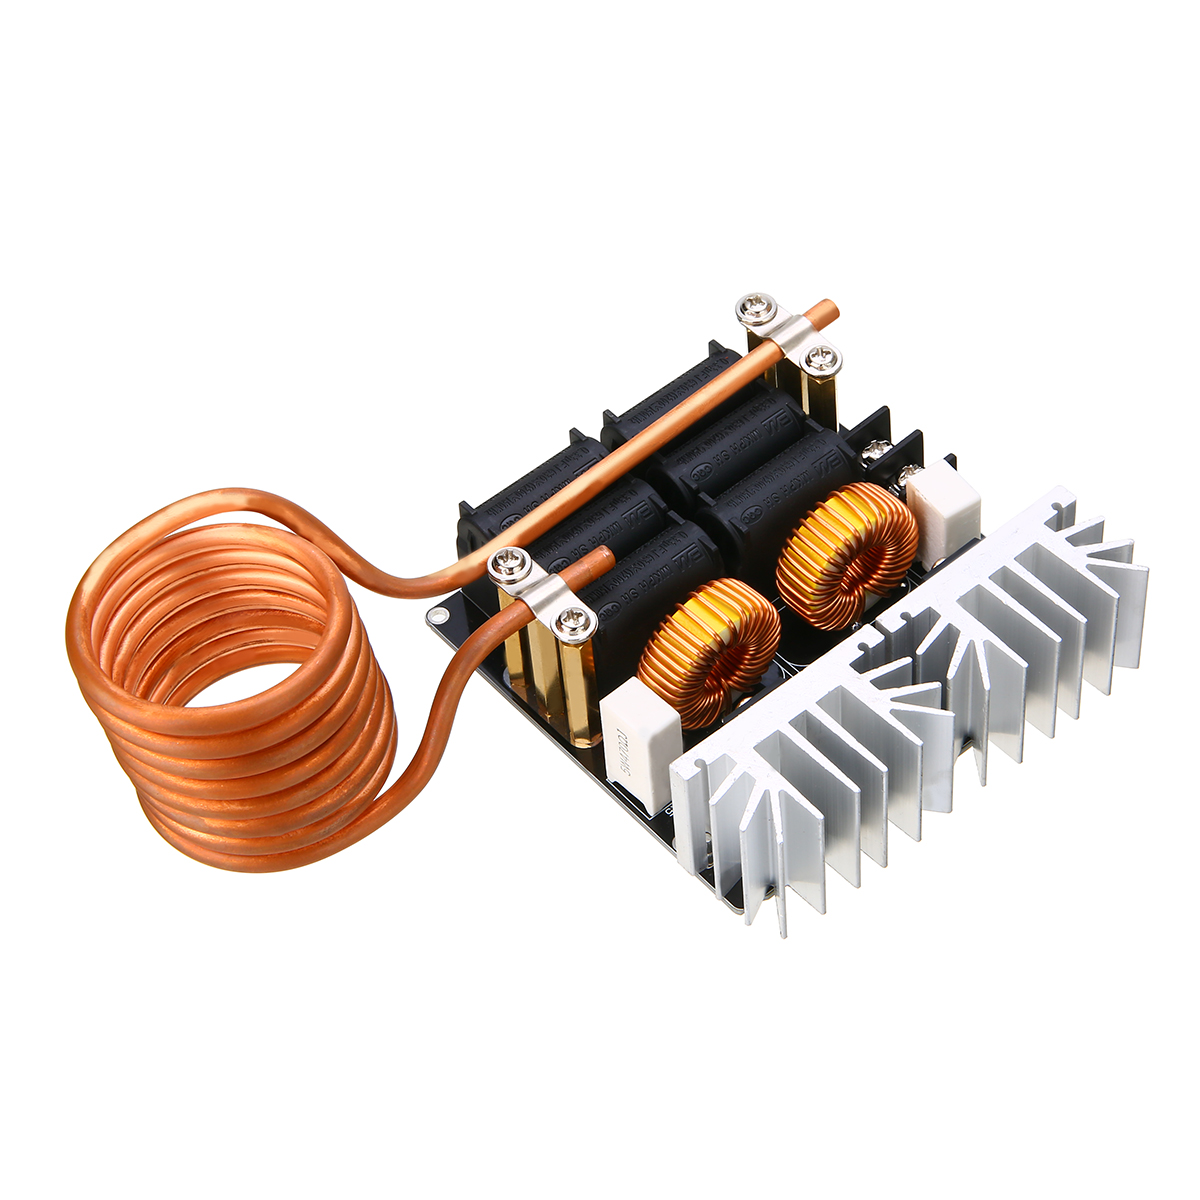 1pc 1000W ZVS Induction Heating Module Low Voltage DIY Heater Board with Tesla Coil Mayitr цена